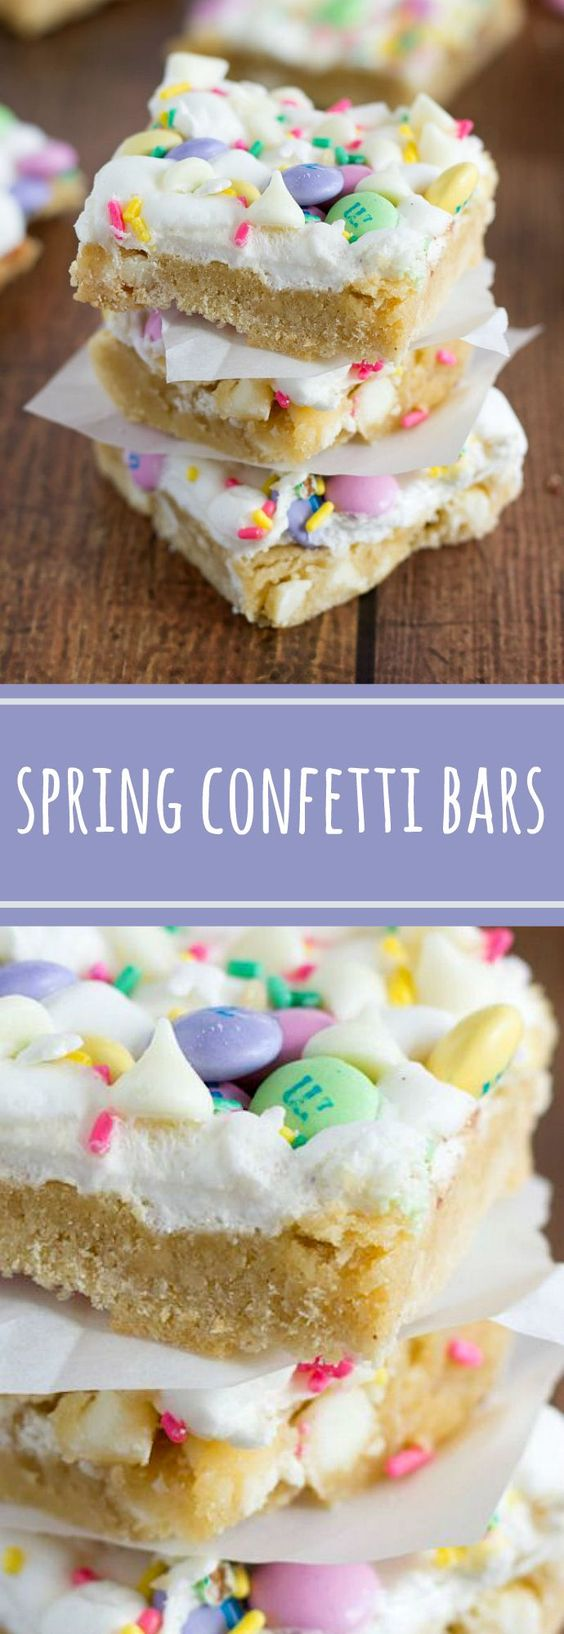 Spring Confetti Bars Dessert Recipe via Chelsea's Messy Apron - Confetti bars made with Spring colored M&M's, white chocolate, Spring sprinkles, and gooey marshmallows. #dessertbars #cookiebars #barsrecipes #dessertforacrowd #partydesserts #christmasdesserts #holidaydesserts #onepandesserts